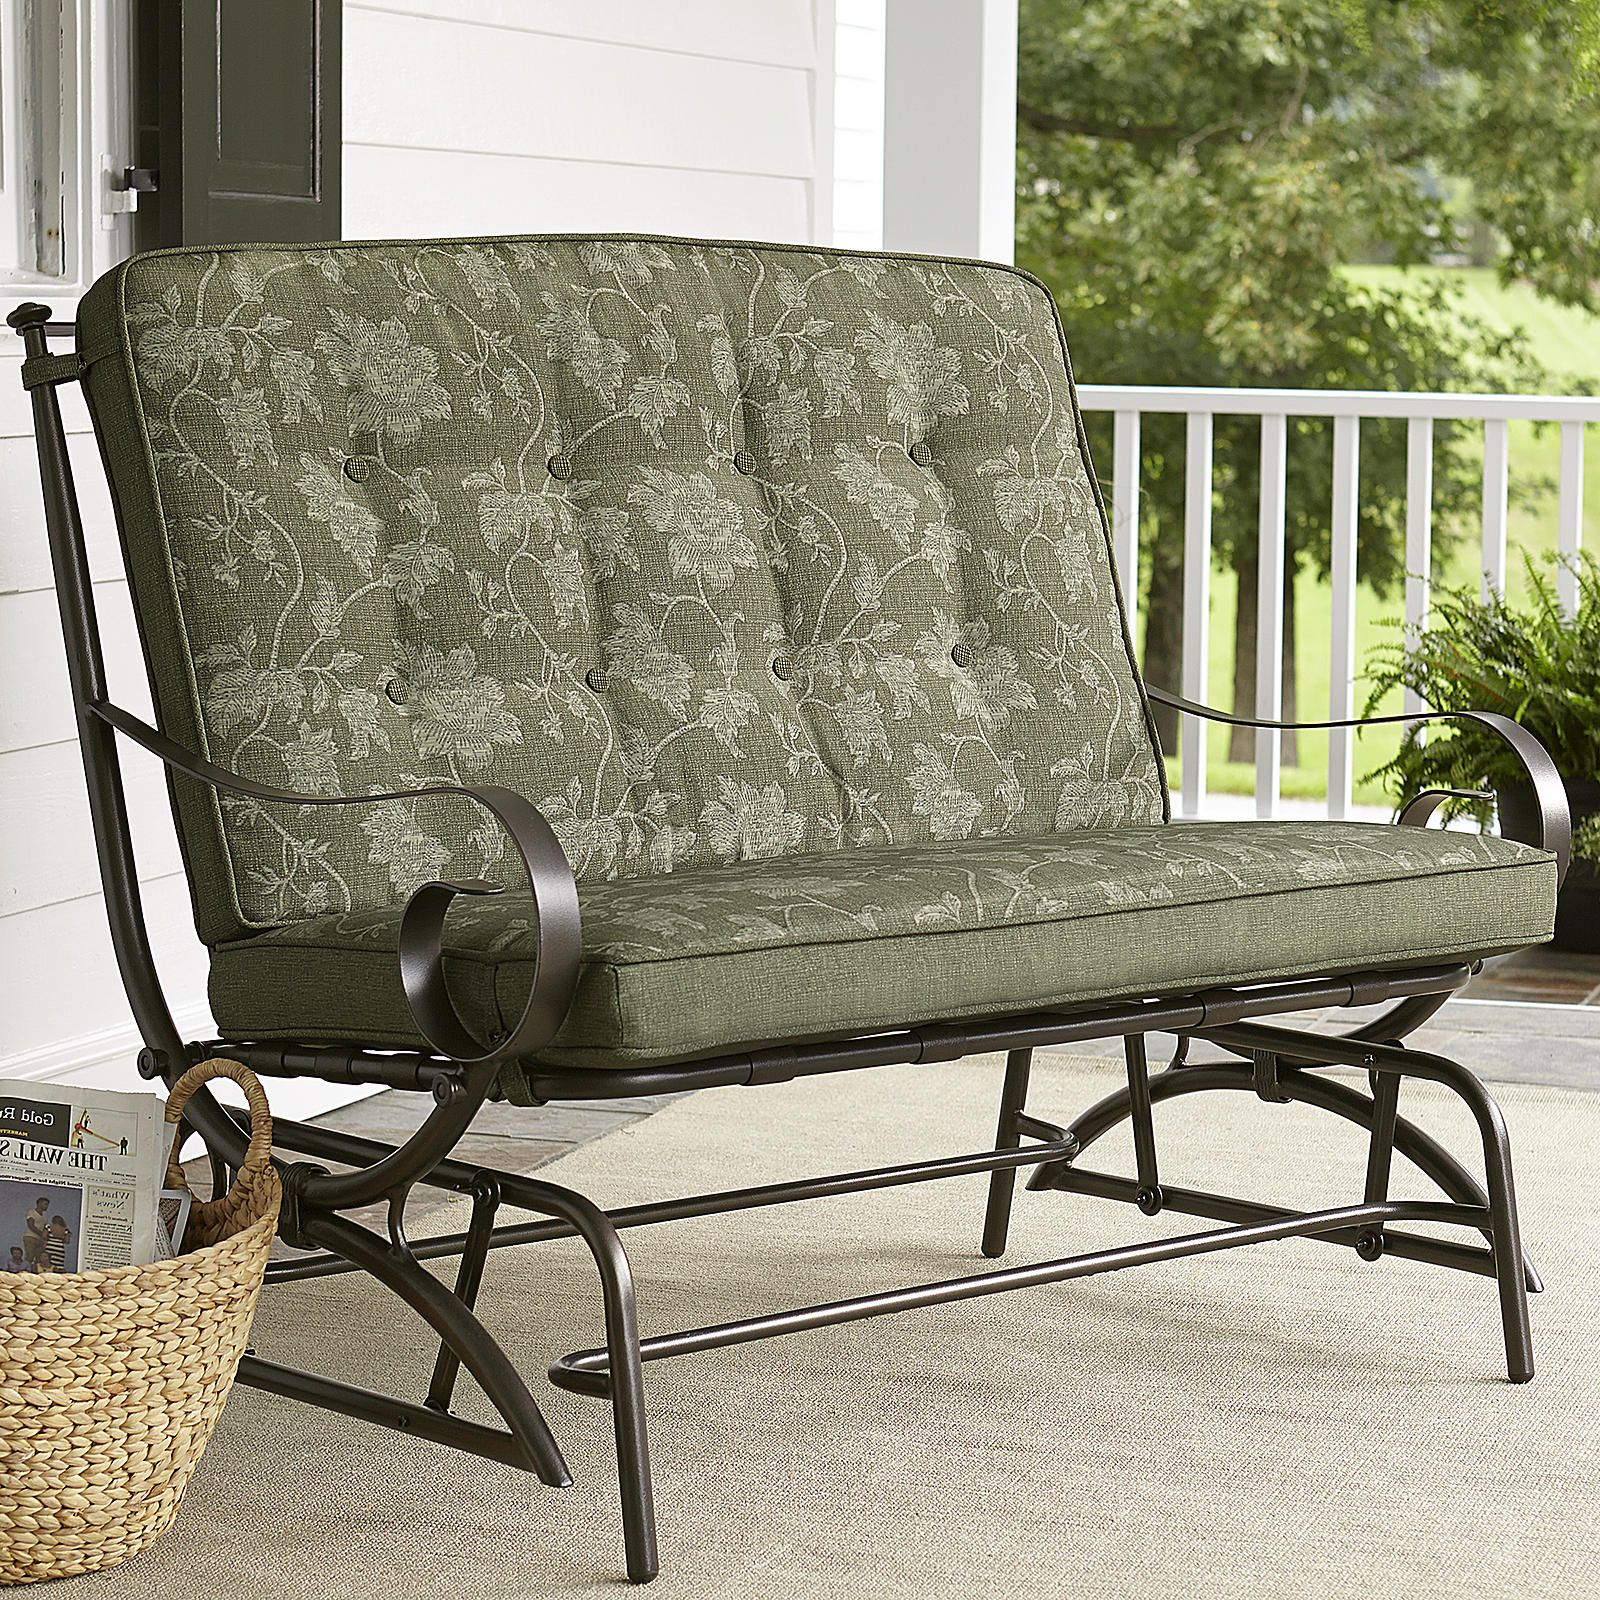 Jaclyn Smith Cora Cushion Double Glider – Outdoor Living With Cushioned Glider Benches With Cushions (View 18 of 27)